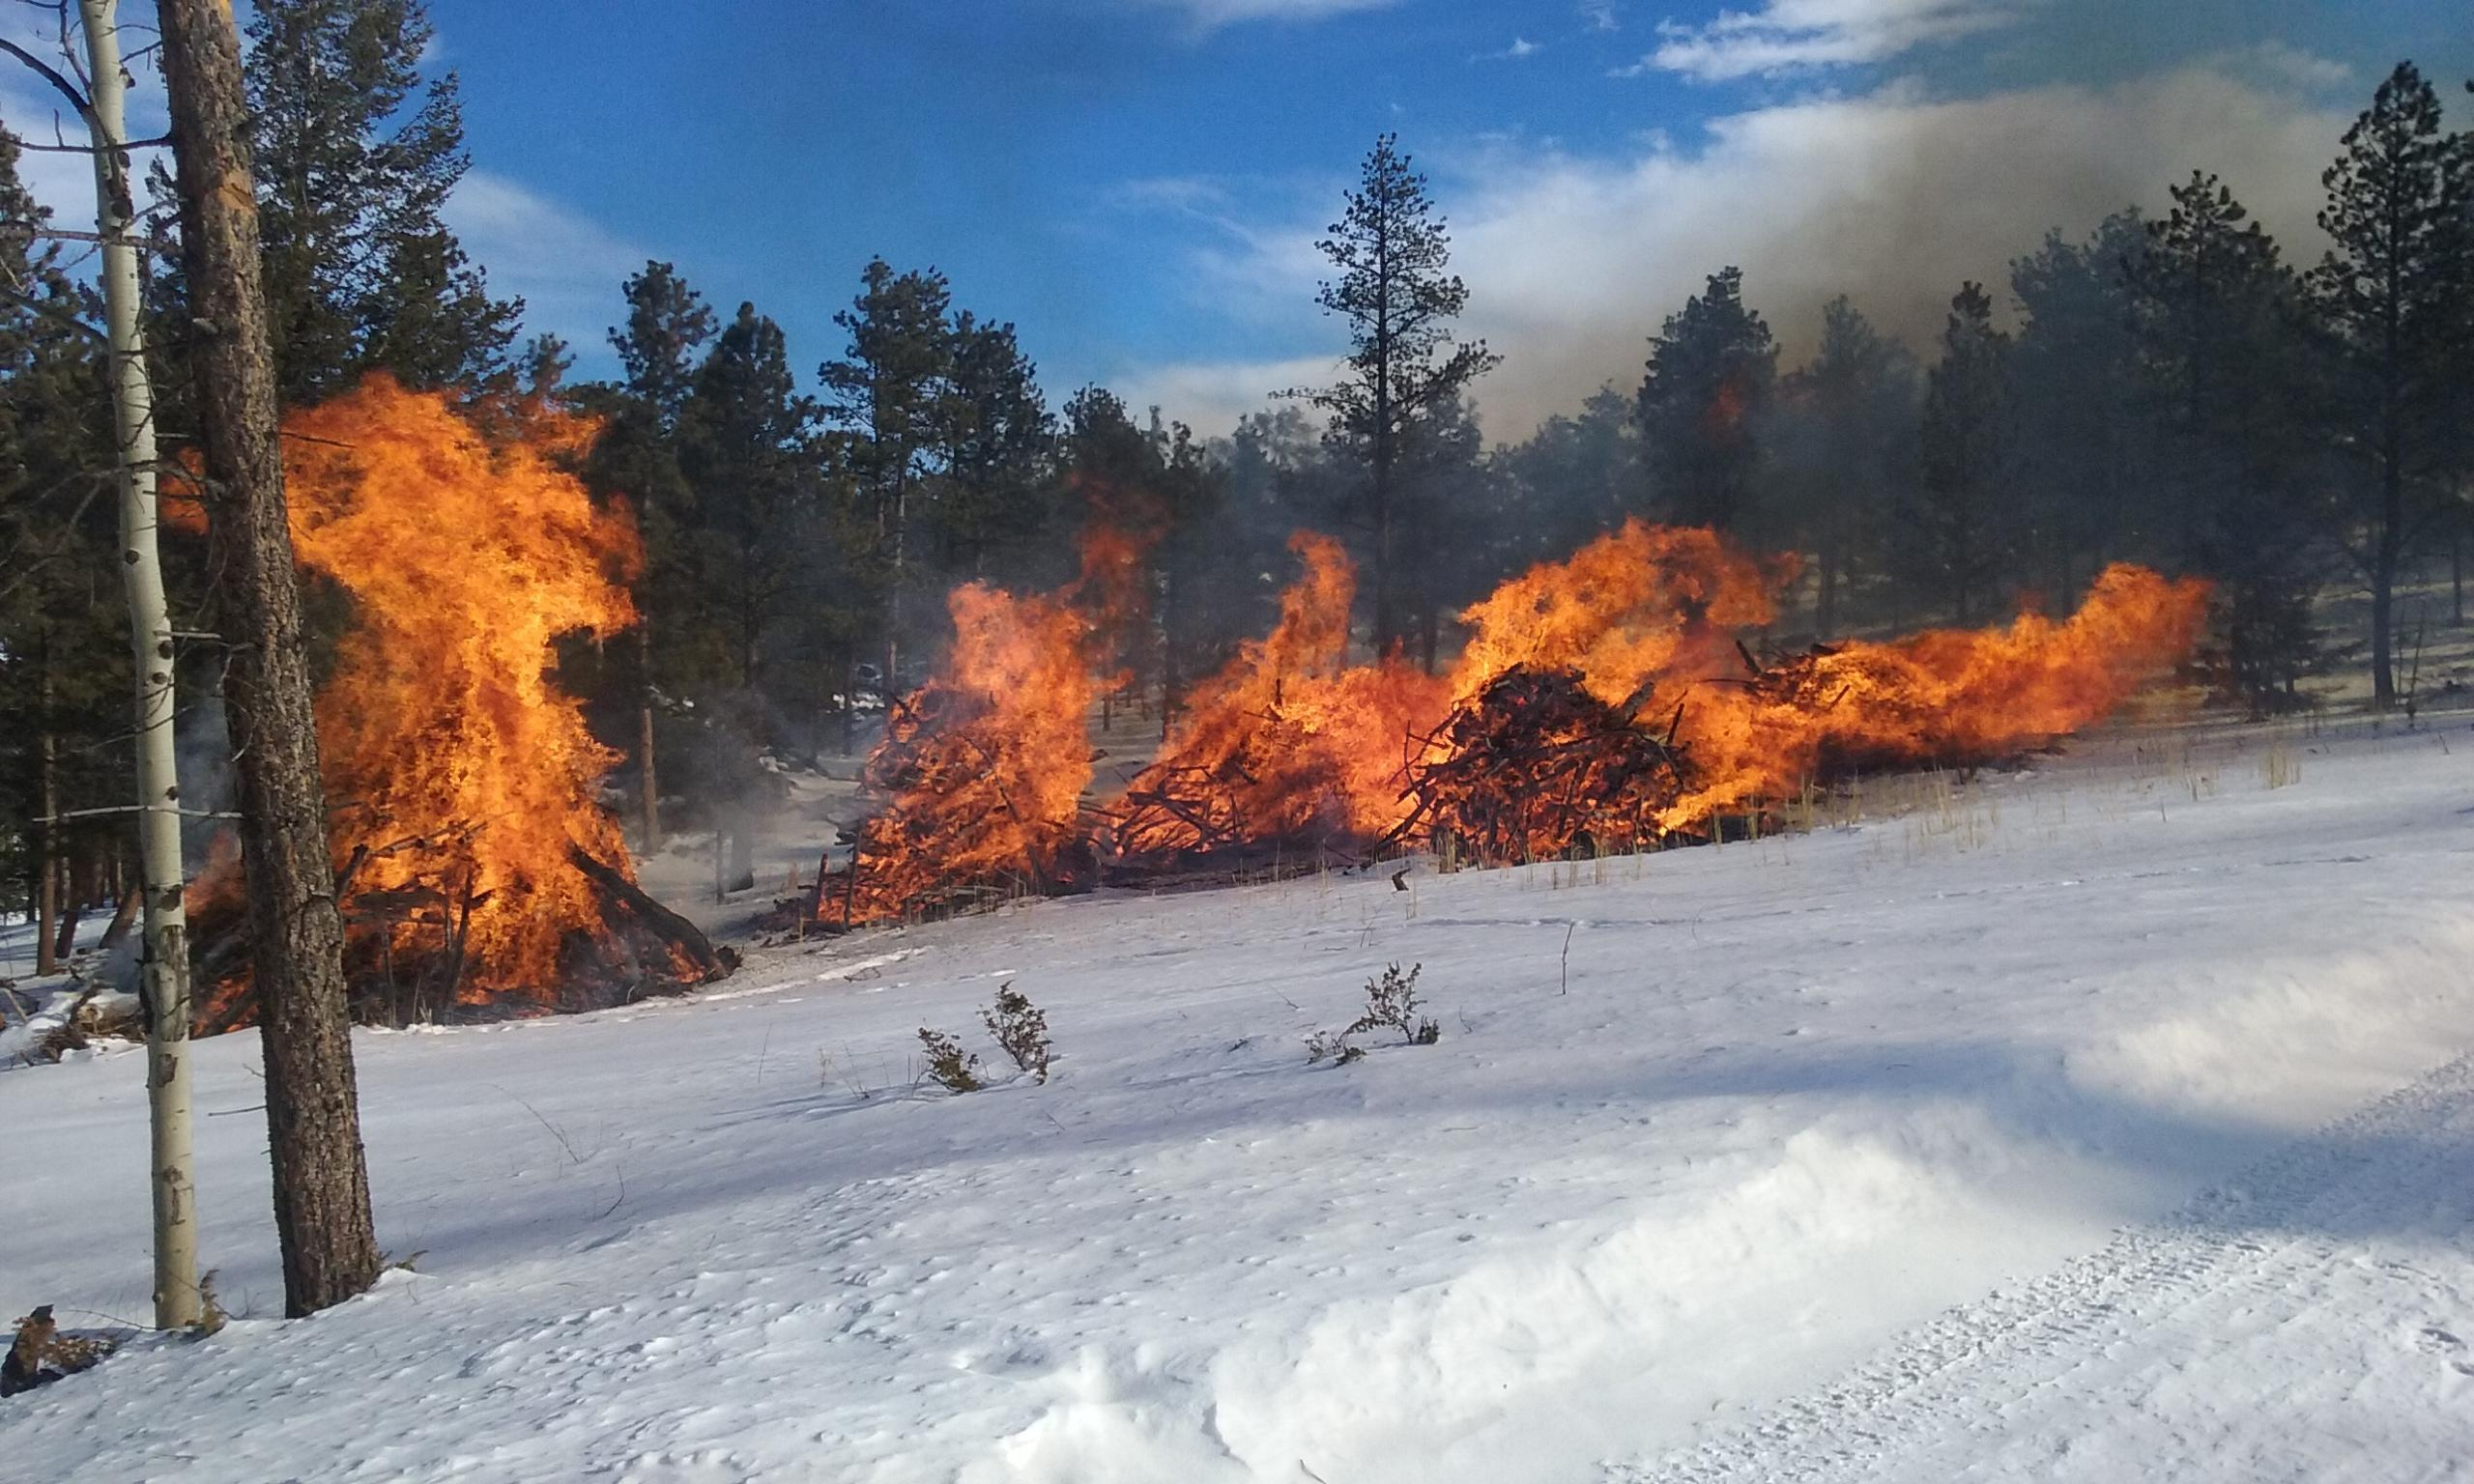 Pile burning in the Creedmore Lakes area north of Red Feather Lakes on January 12, 2016.